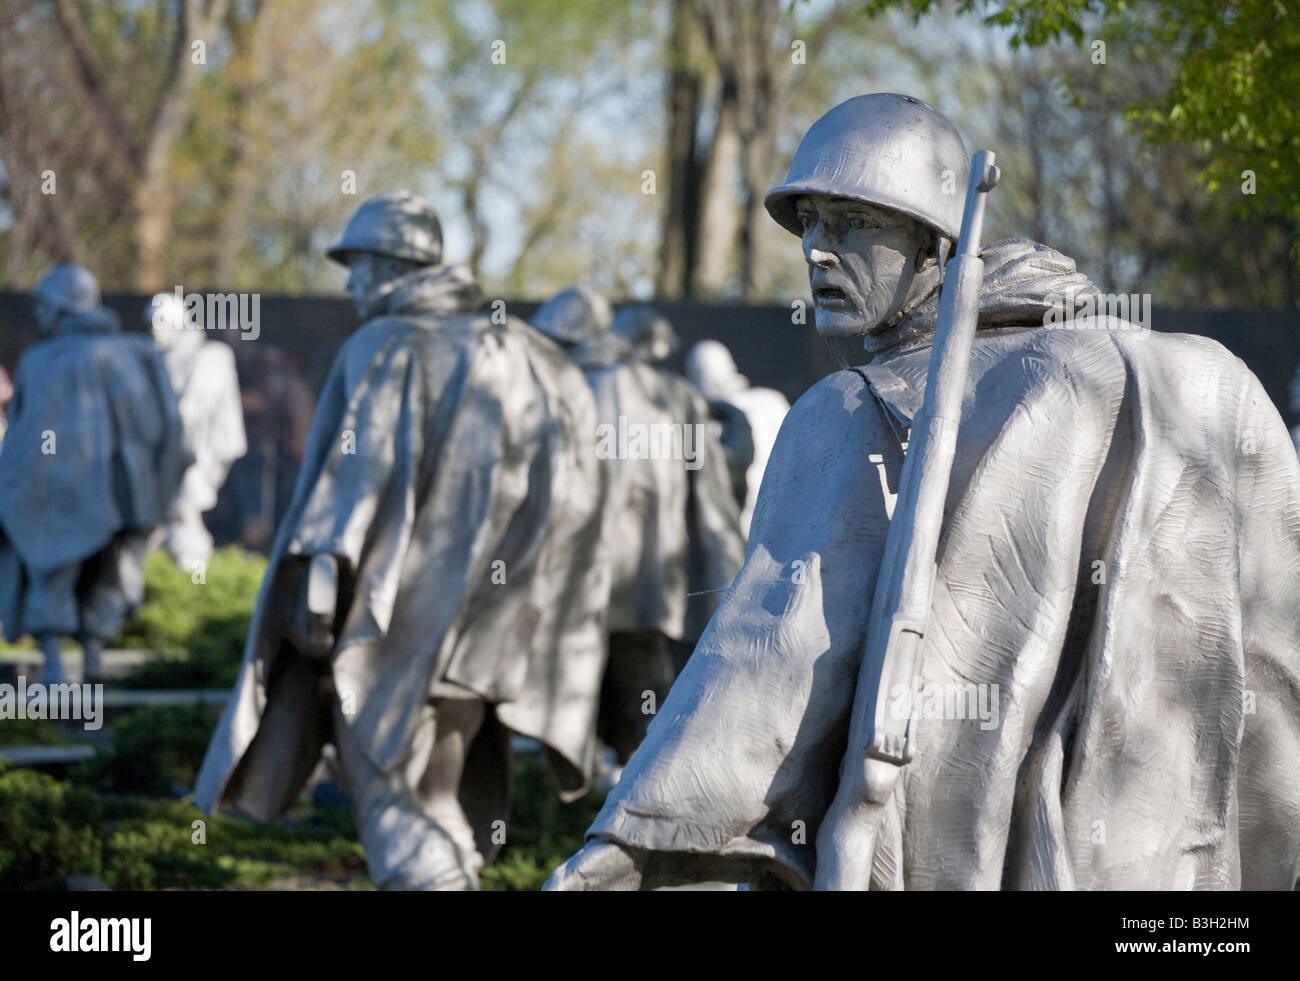 Haunted Look left. A statue of a rifle toting US soldier fighting in Korea with a haunted tired dispirited look - Stock Image